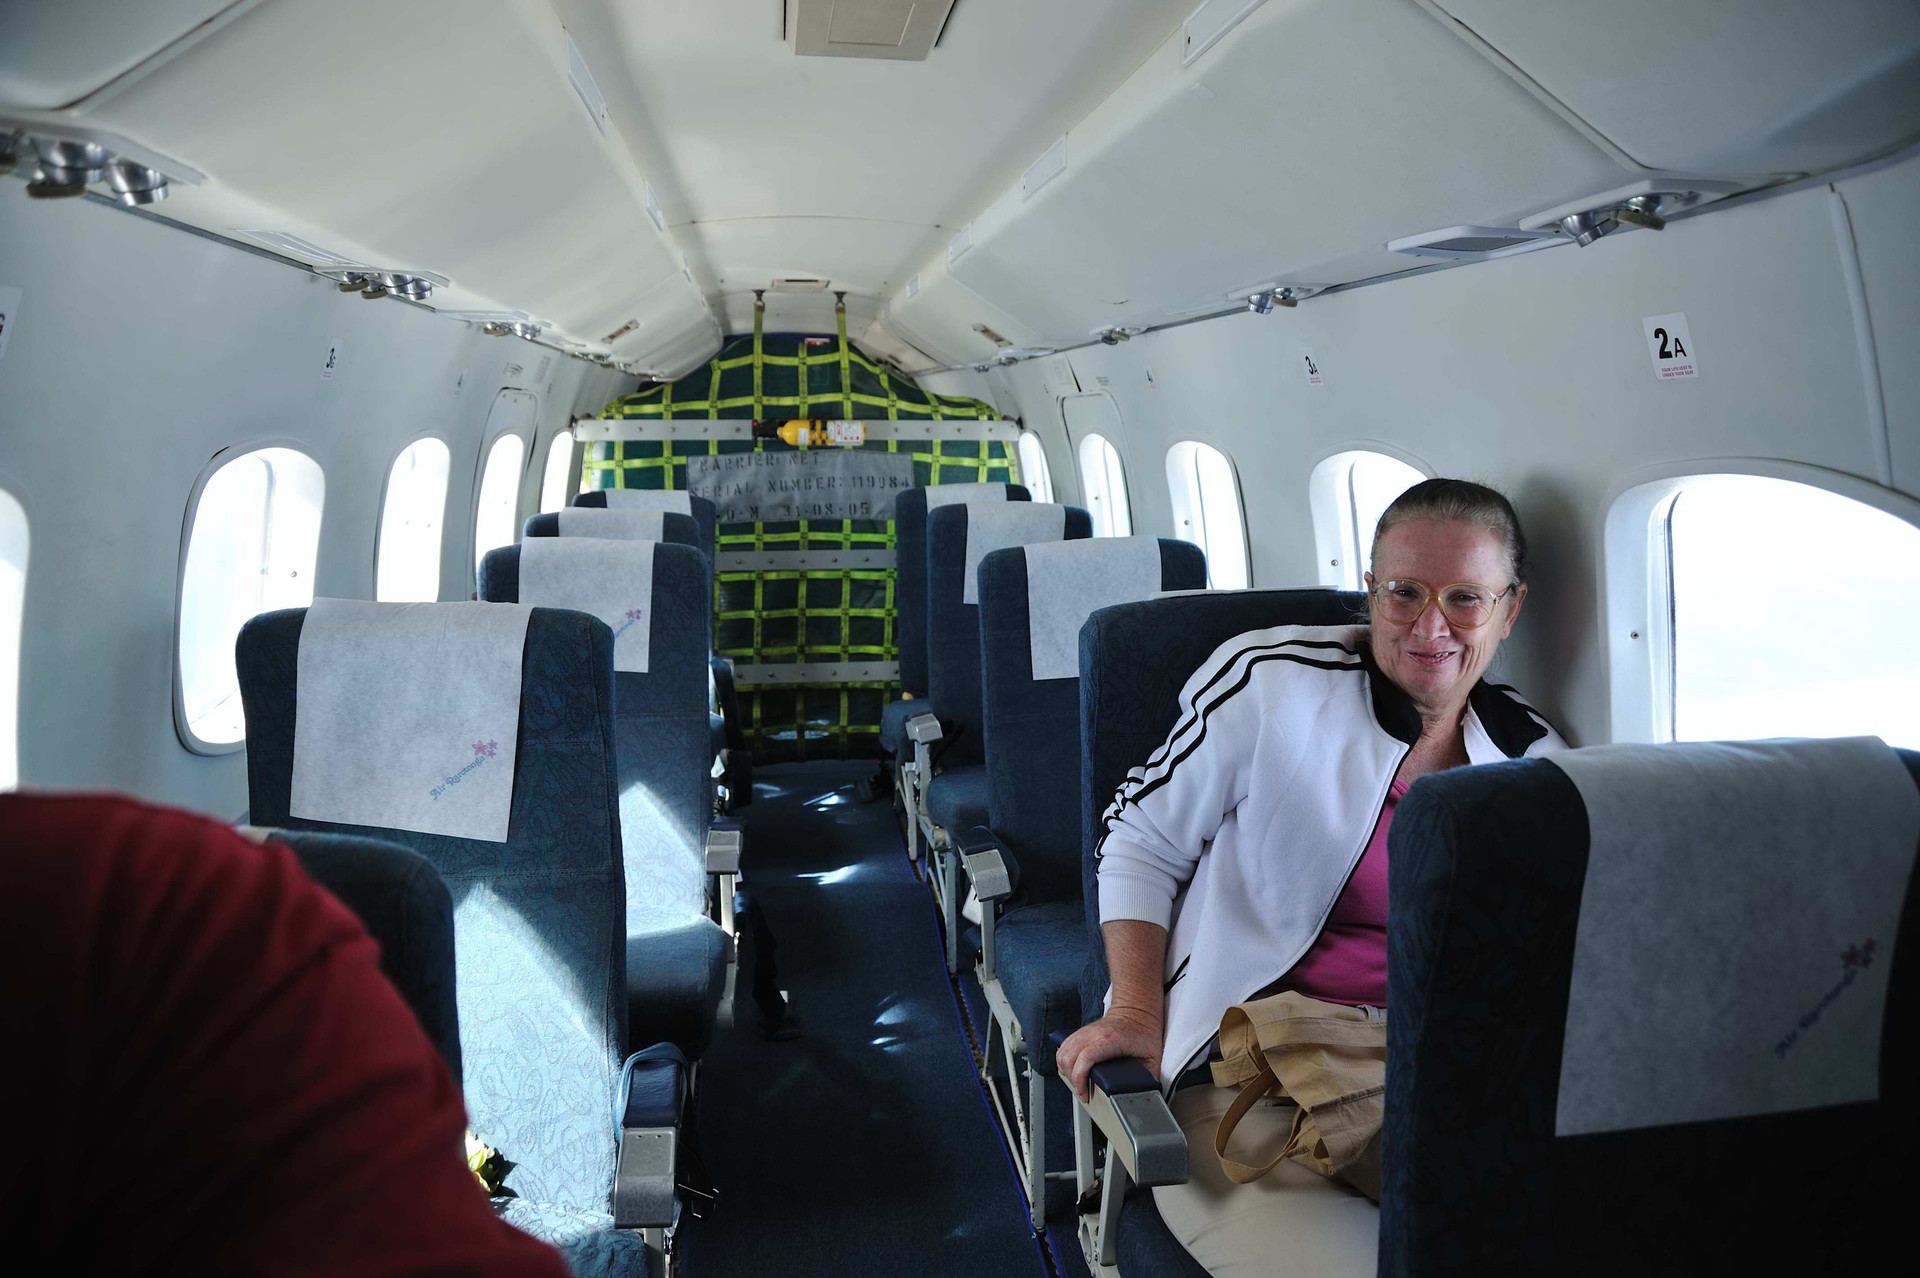 Again, only one person on the flight to Aitutaki